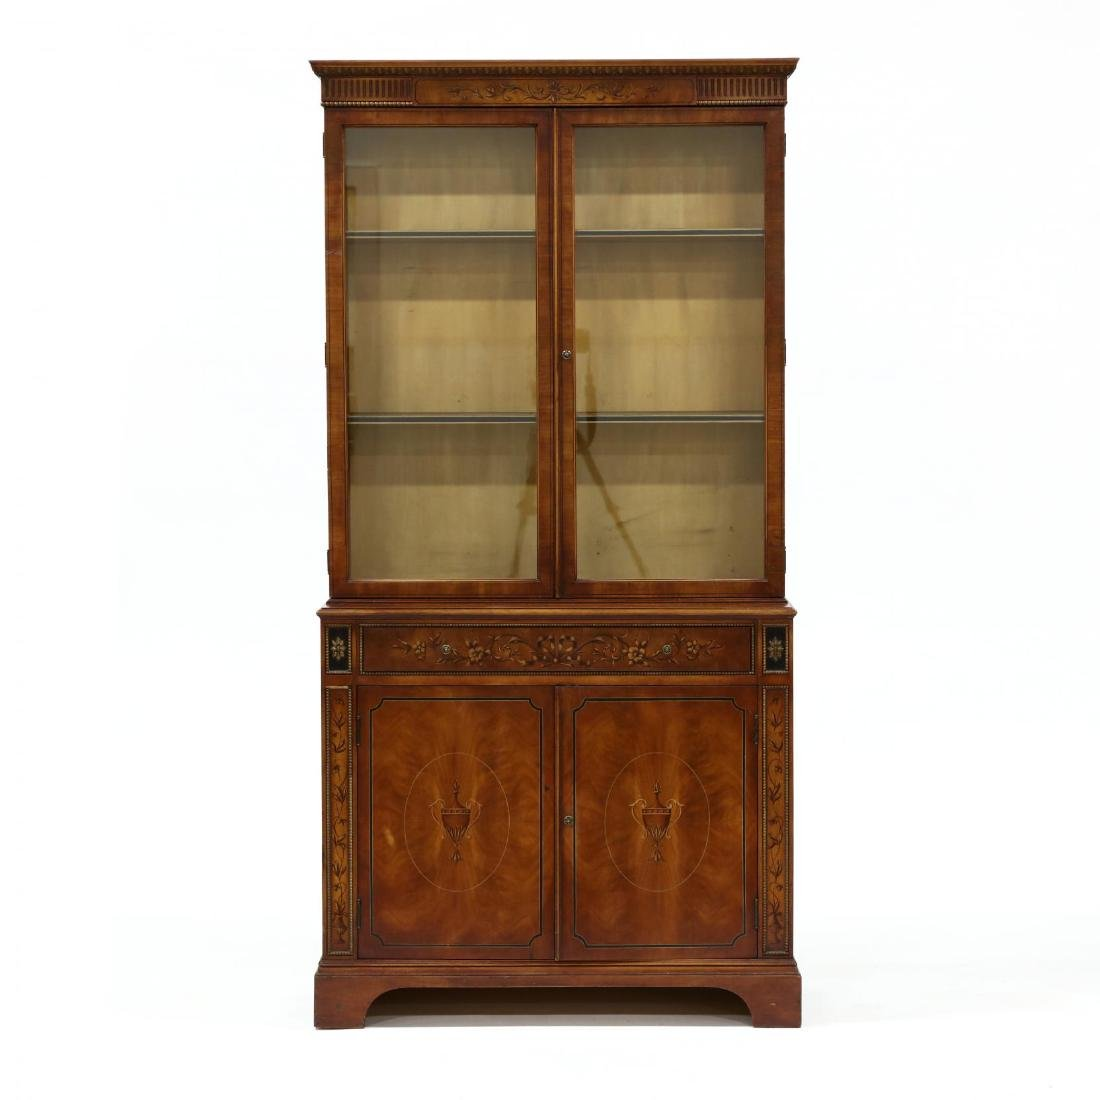 Kindel, Italianate Paint Decorated China Cabinet